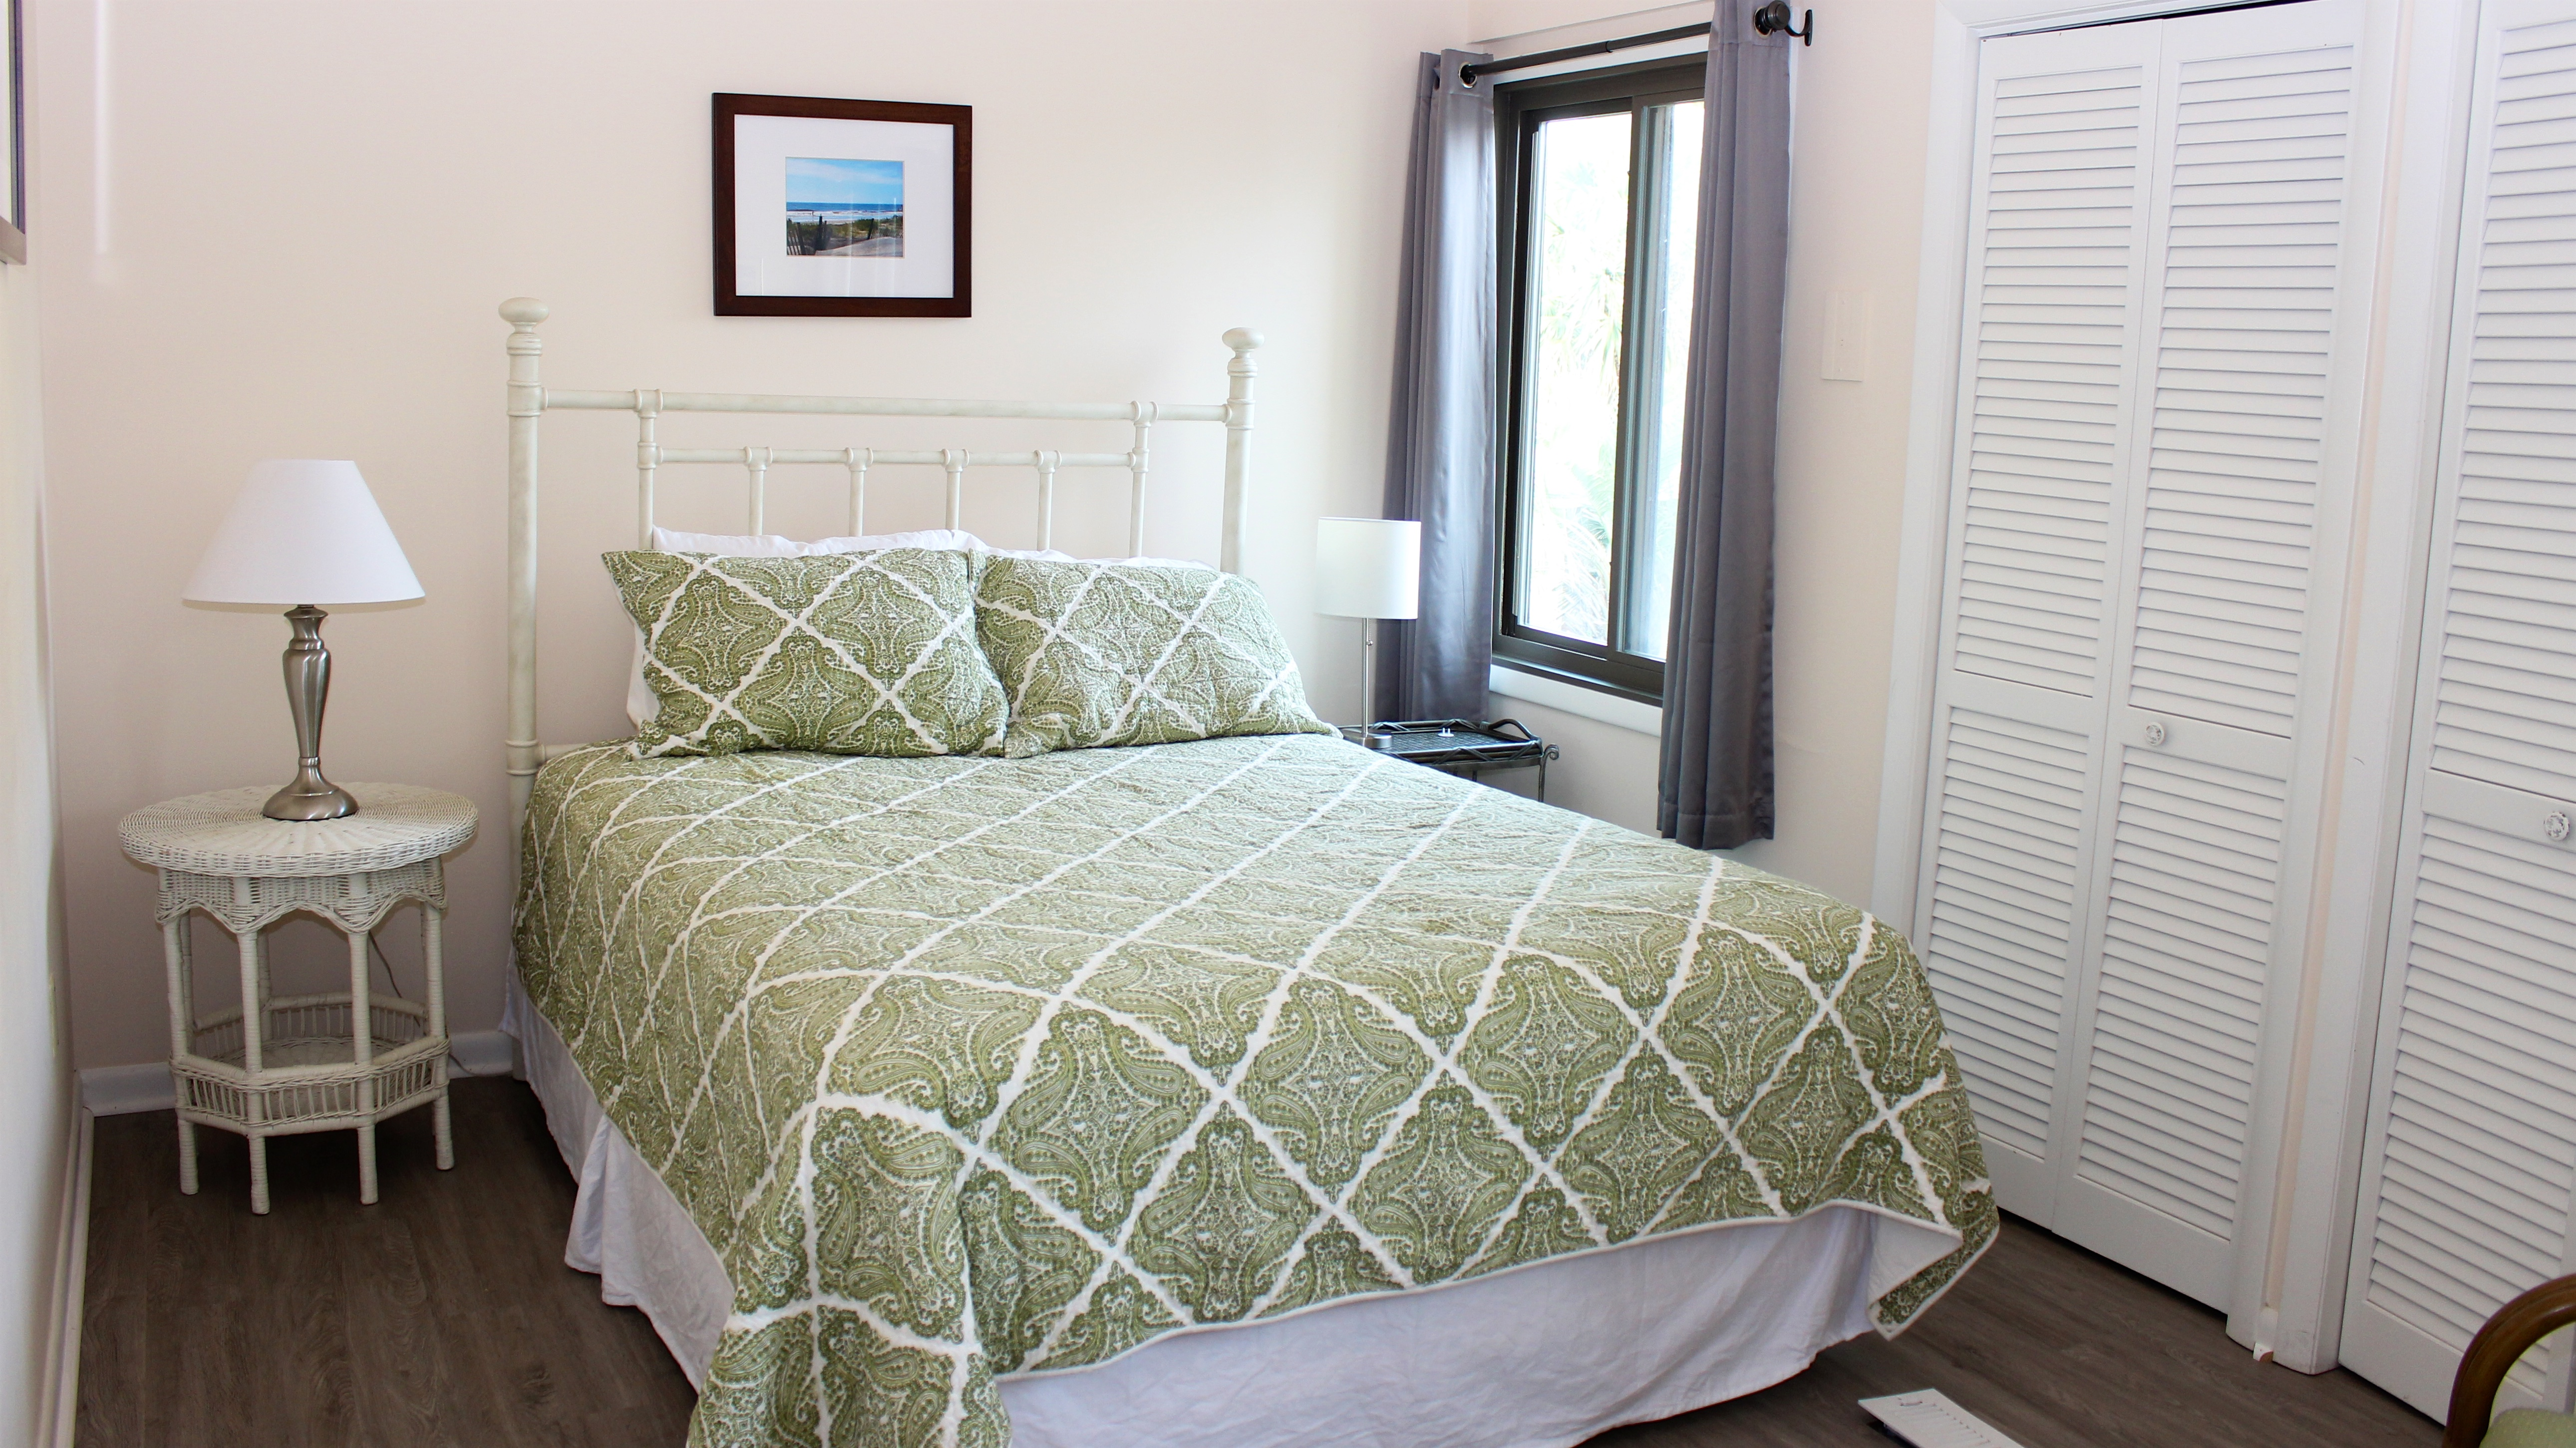 The 2nd bedroom is off the kitchen and has a queen bed.